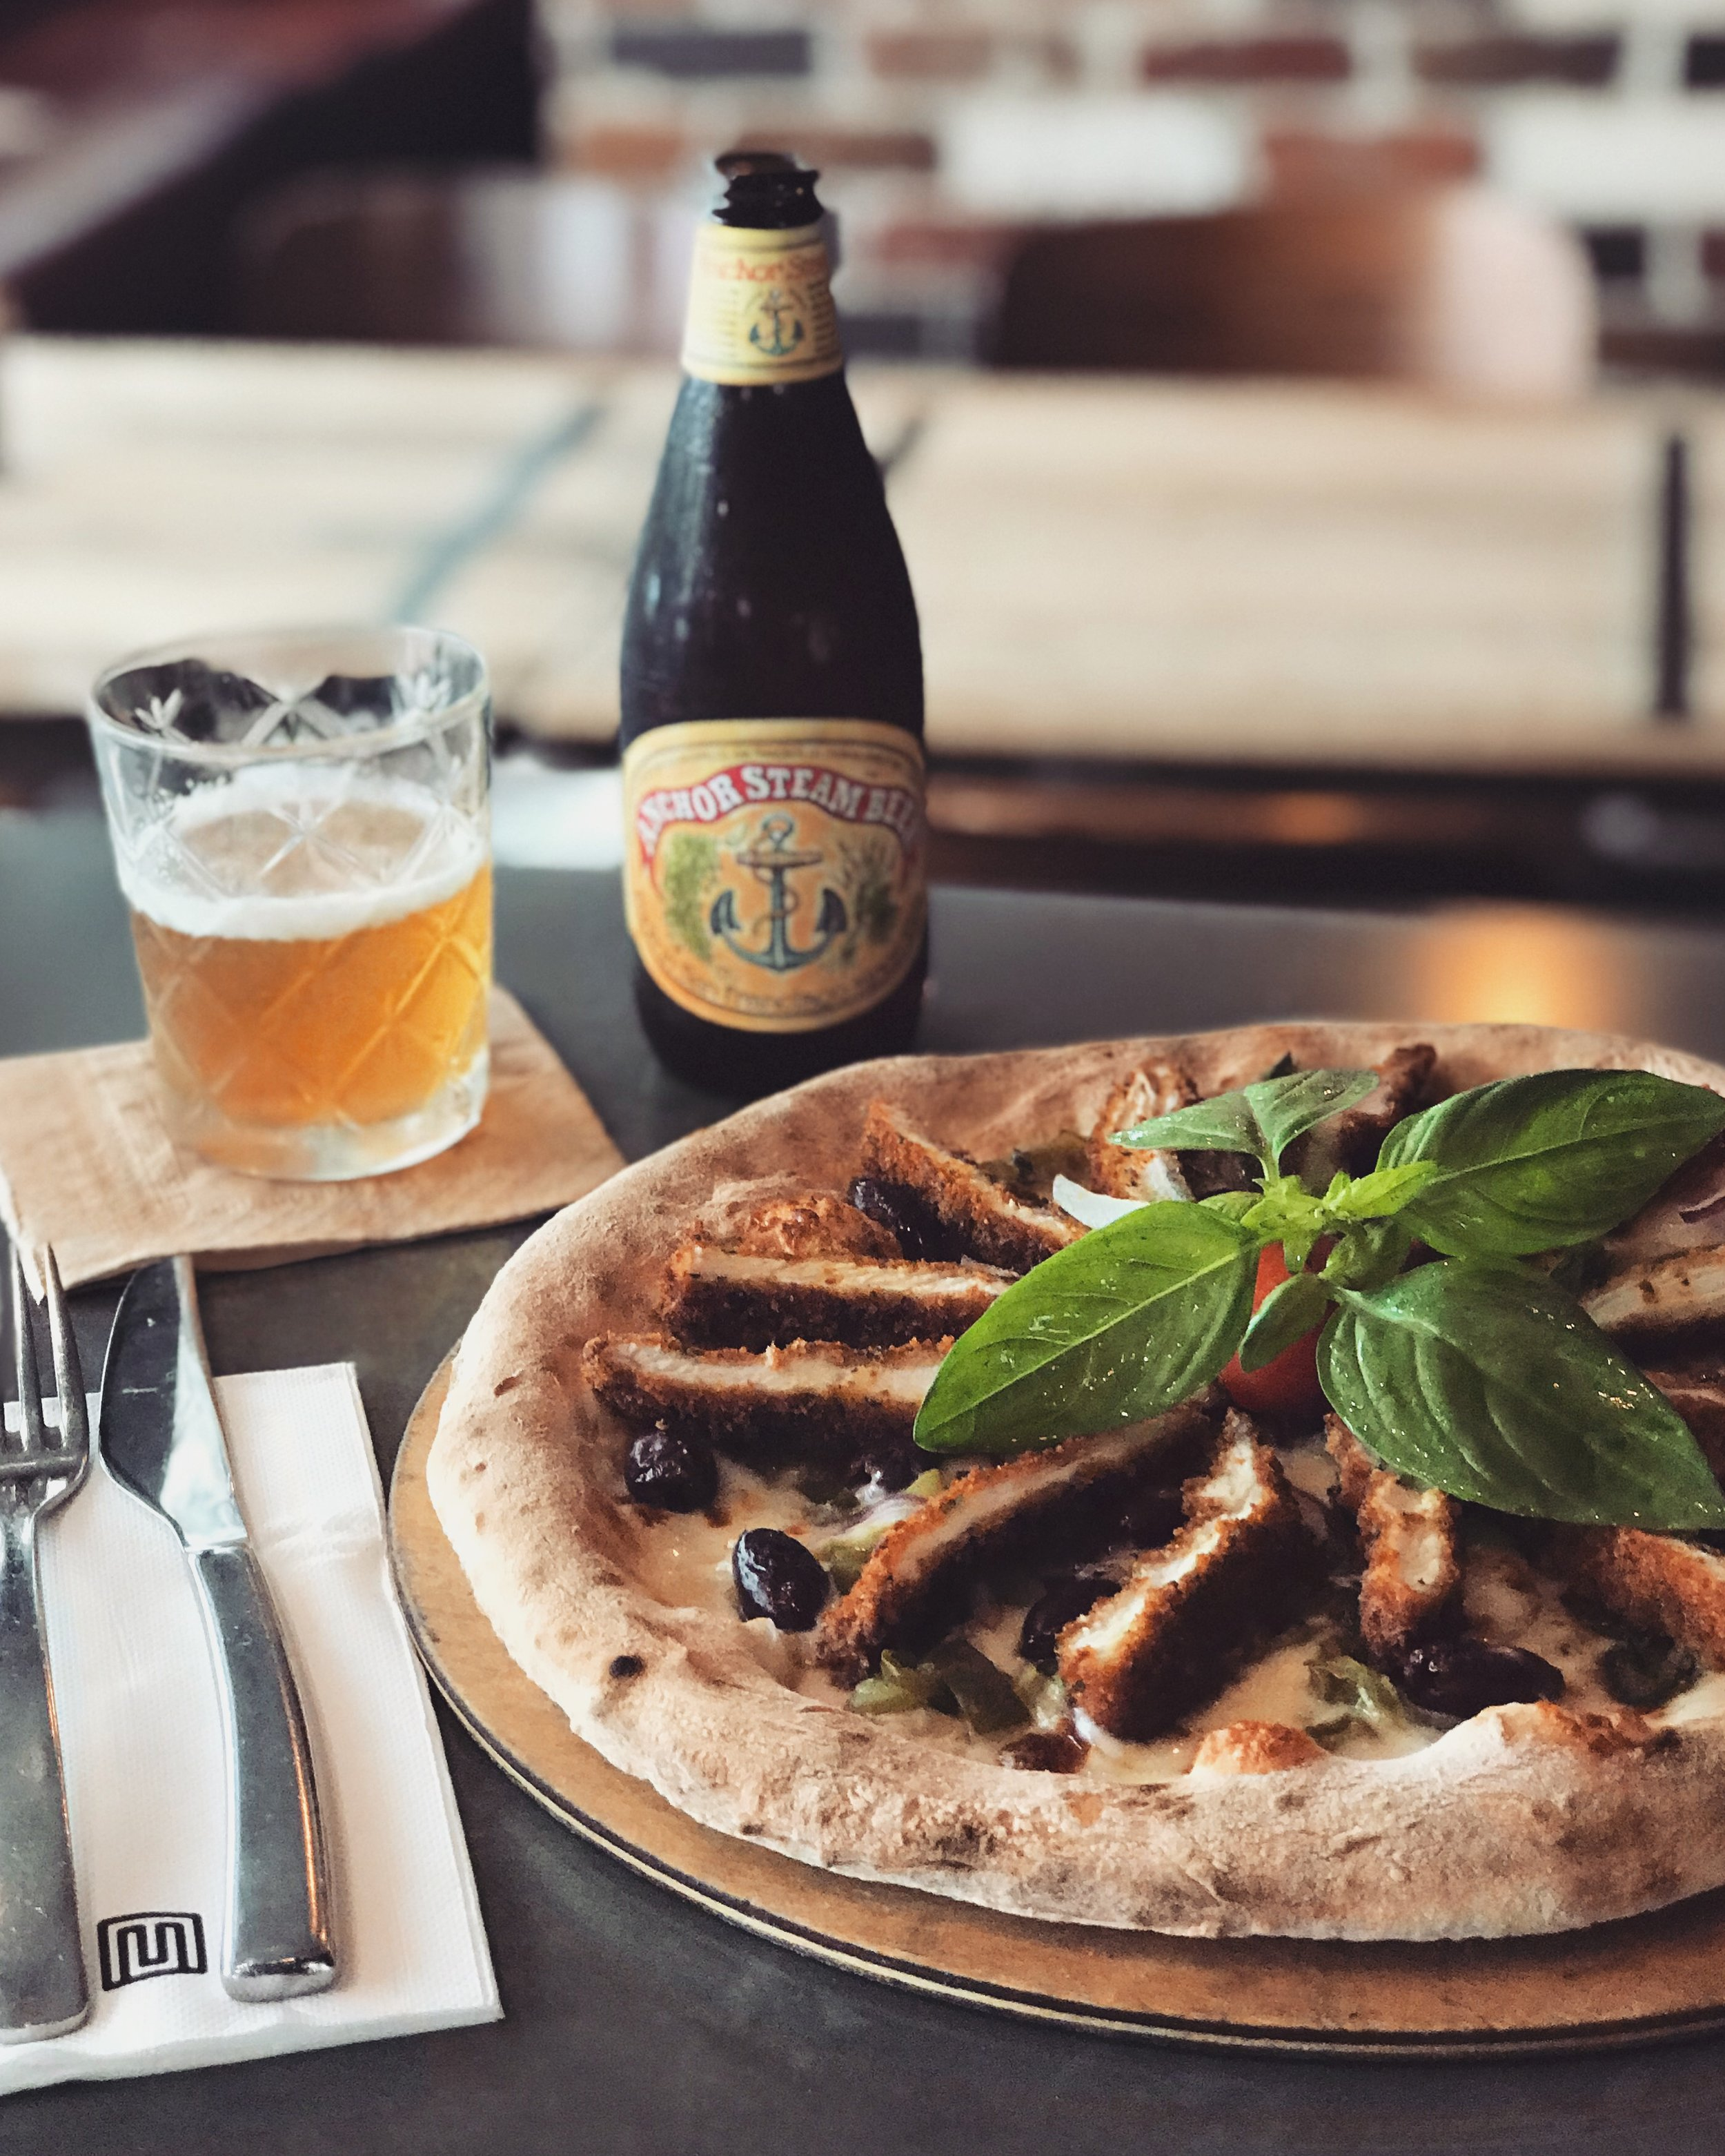 6-12 December - Moroccan spices and parmesan crumbed chicken breast, fresh jalapeno chillies, onion, capsicum, olives, chilli mayo and fior di latte mozzarella.Our drink recommendation is Anchor Steam from San Francisco.